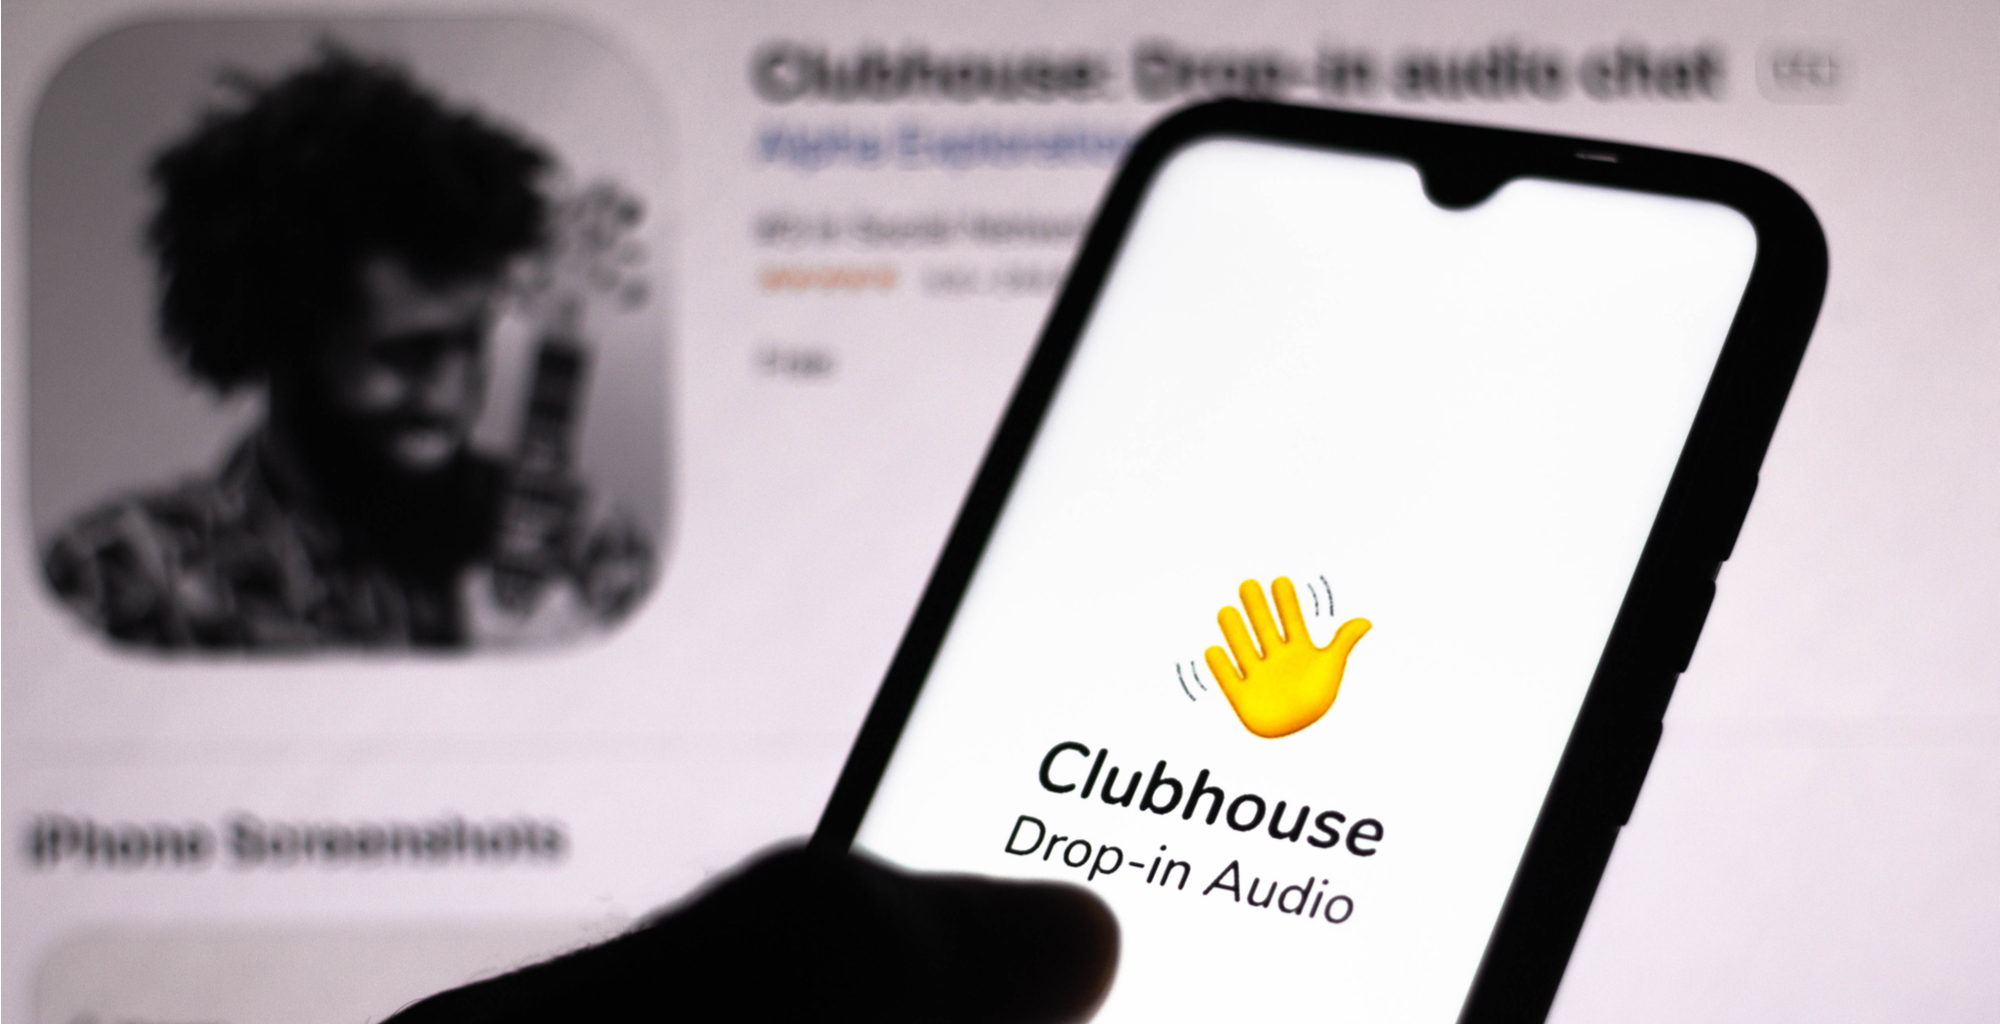 the clubhouse app open on a phone screen